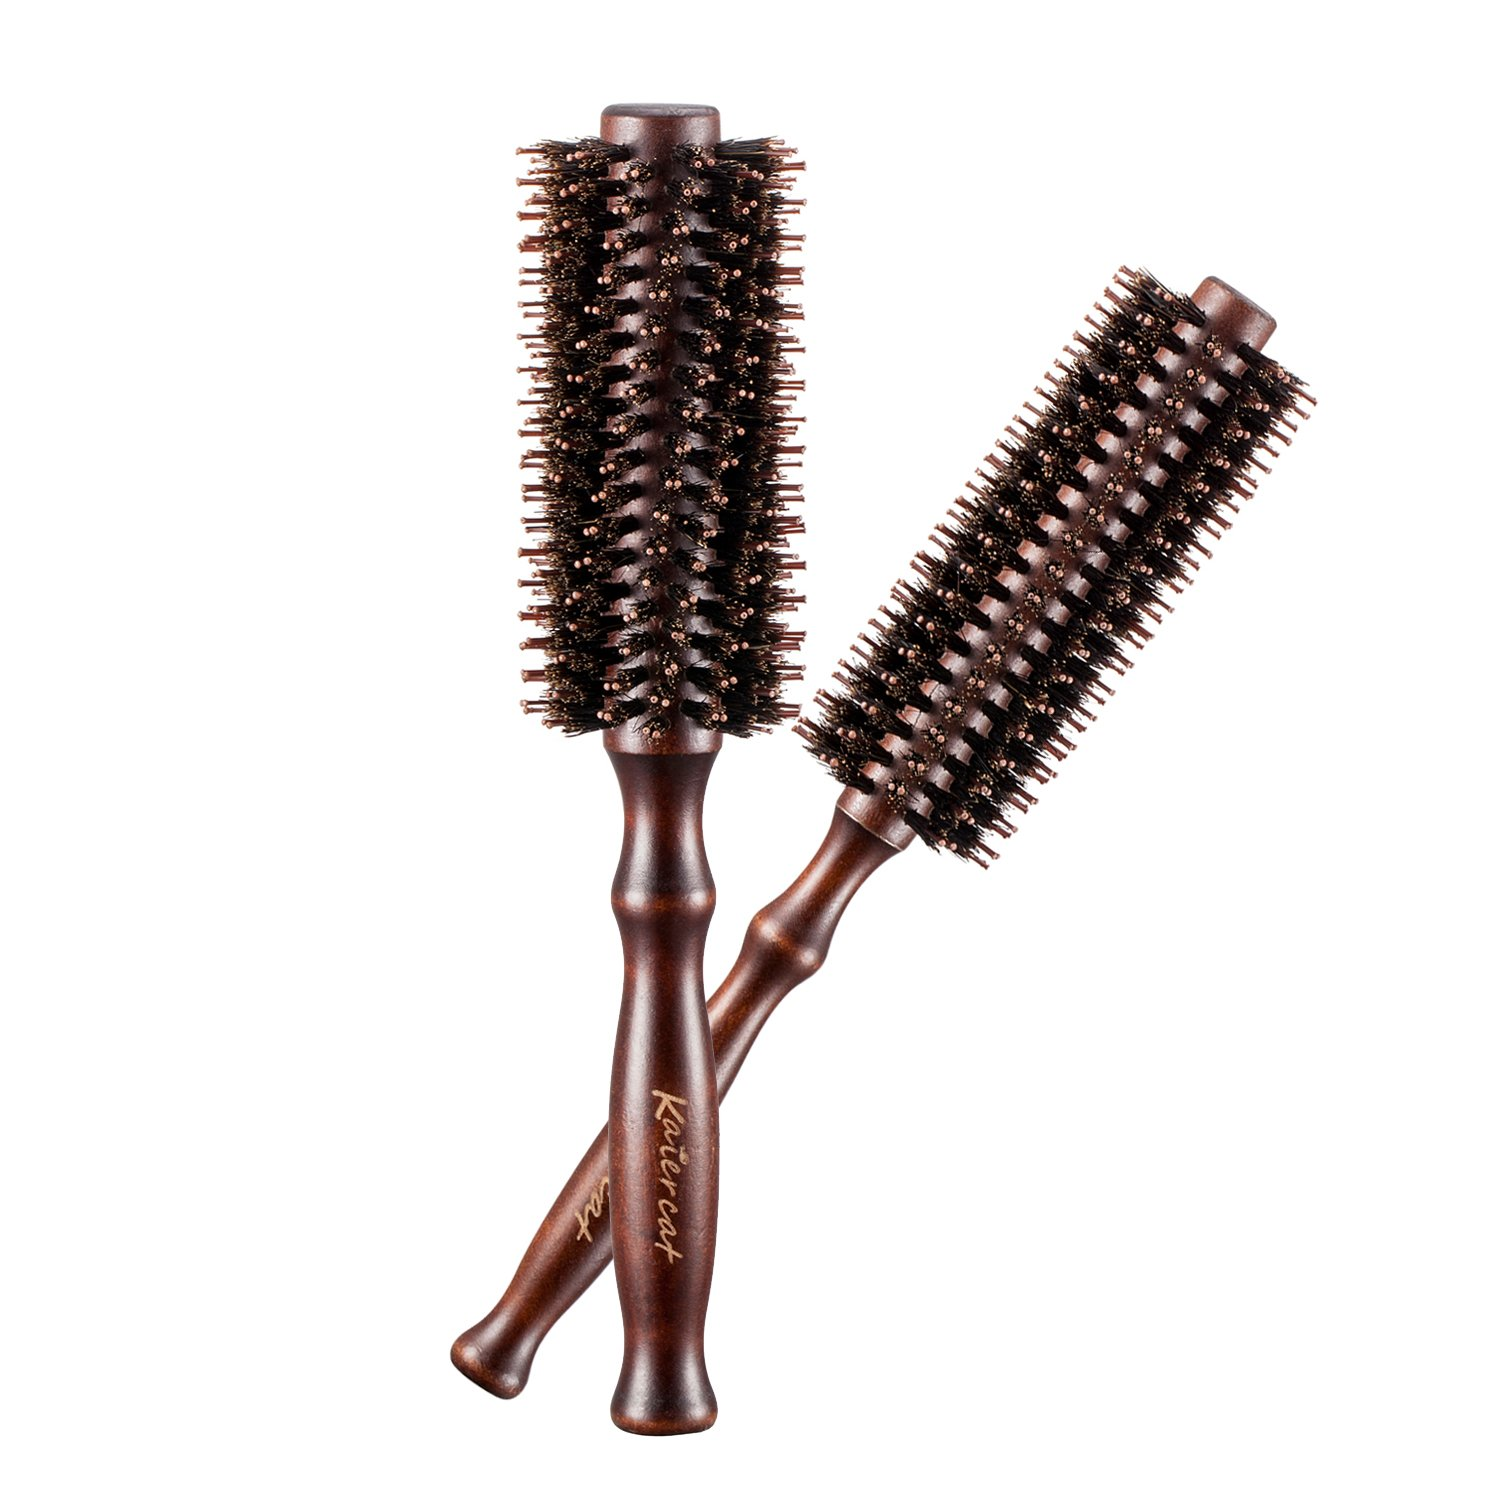 Kaiercat Natural Boar Bristles Hair Brush Pairs Round Curling Combs (Diameter 2 Inch+1.6 Inch) For Short to Long Hair